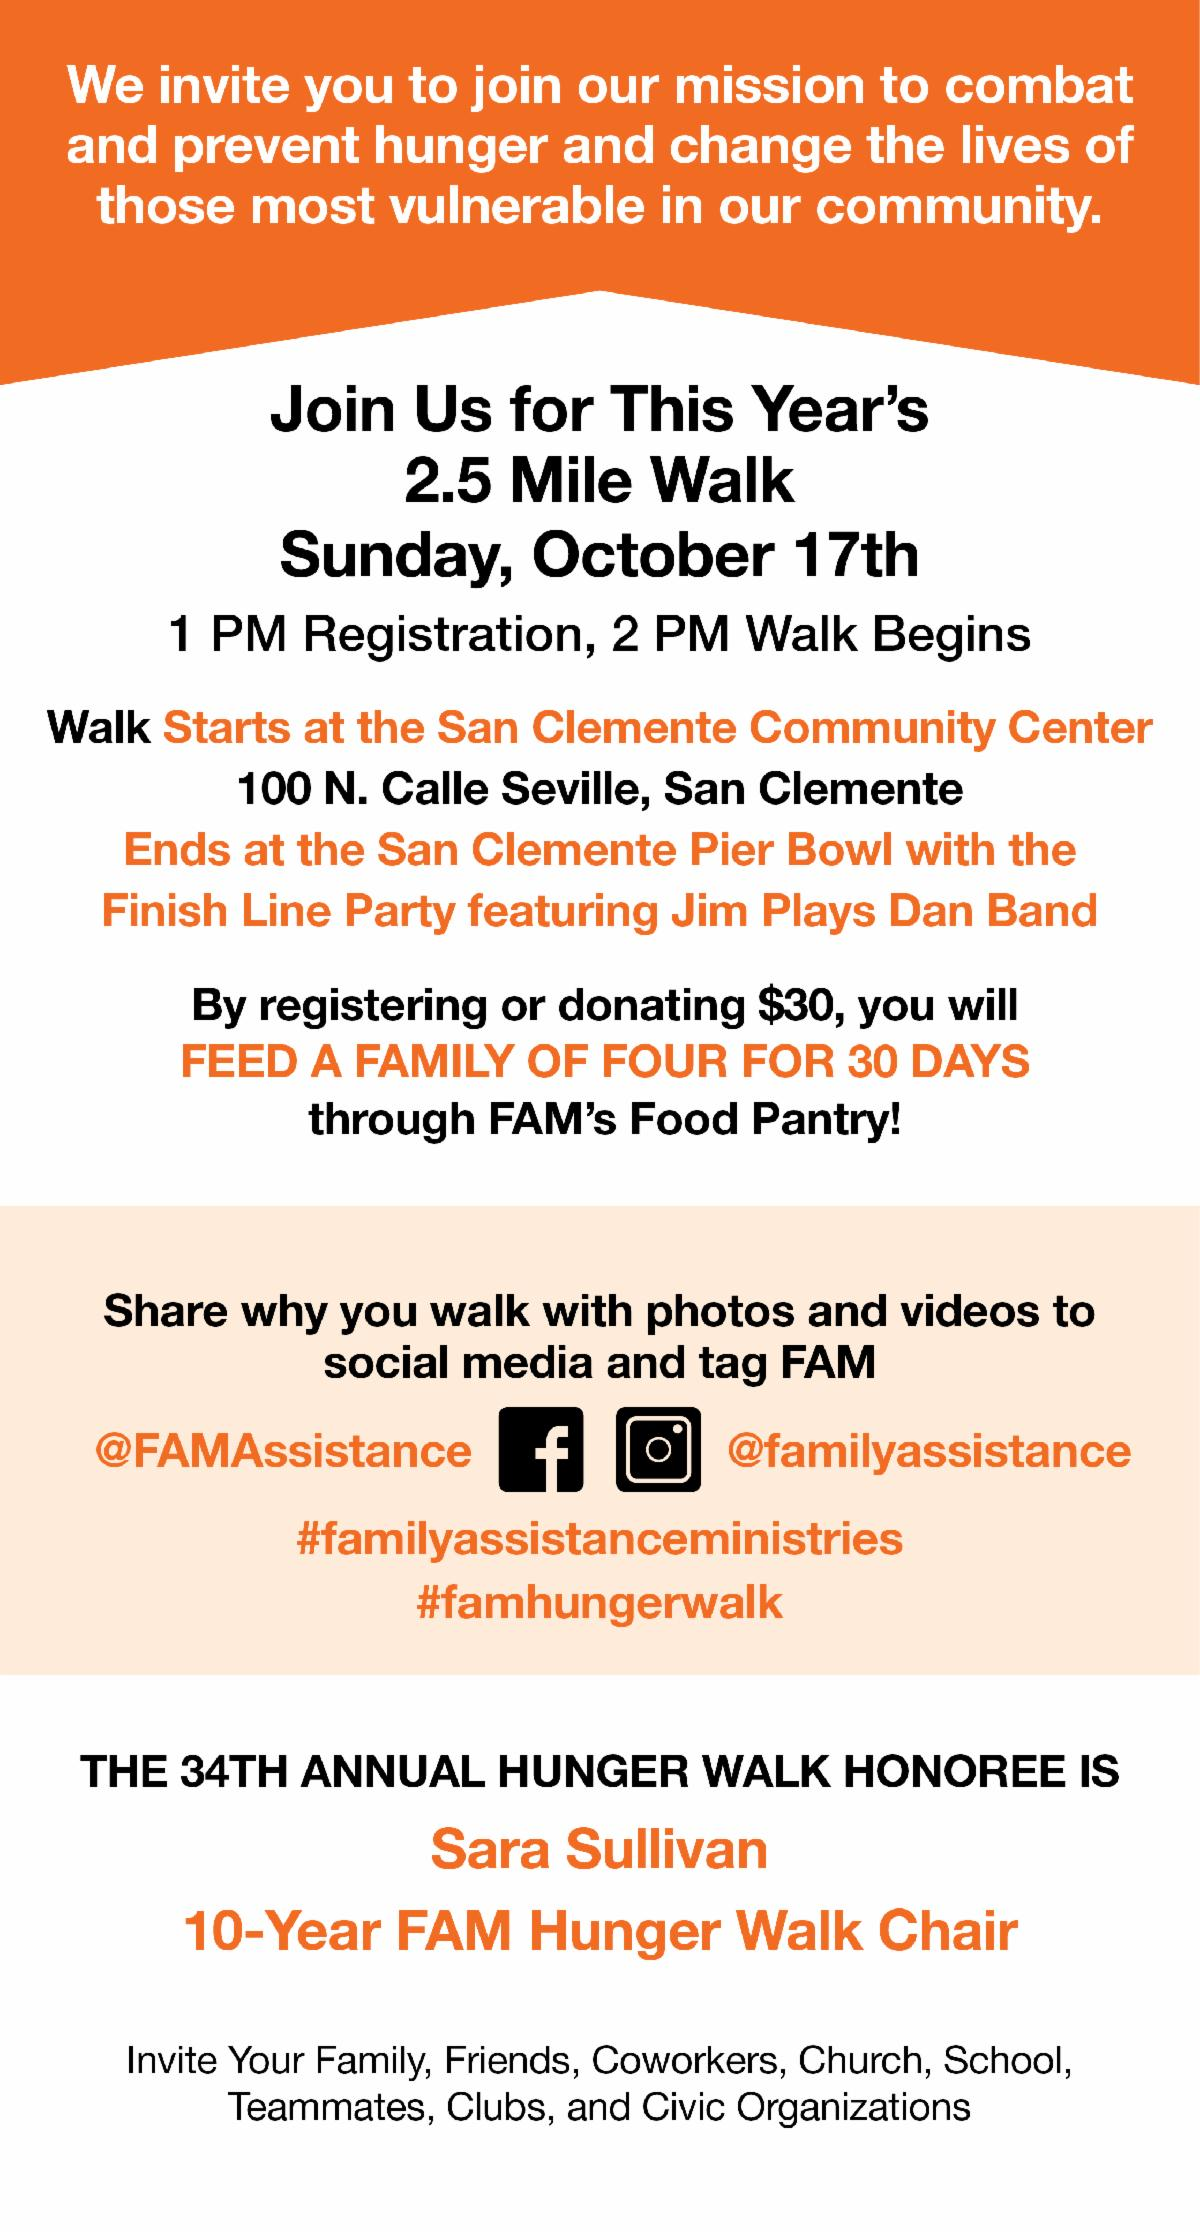 We invite you to join our mission to combat and prevent hunger and change the lives of those most vulnerable in our community.  Join Us for This Year?s 2.5 Mile Walk Sunday, October 17th 1 PM Registration, 2 PM Walk Begins  Walk Starts at the San Clemente Community Center100 N. Calle Seville, San ClementeEnds at the San Clemente Pier Bowl with the Finish Line Party featuring Jim Plays Dan Band By registering or donating $30, you will FEED A FAMILY OF FOUR FOR 30 DAYS through FAM?s Food Pantry! Share why you walk with photos and videos to social media and tag FAM @FAMAssistance @familyassistance #familyassistanceministries #famhungerwalk  The 34th Annual Hunger Walk Honoree is Sara Sullivan 10-Year FAM Hunger Walk Chair  Invite Your Family, Friends, Coworkers, Church, School, Teammates, Clubs, and Civic Organizations